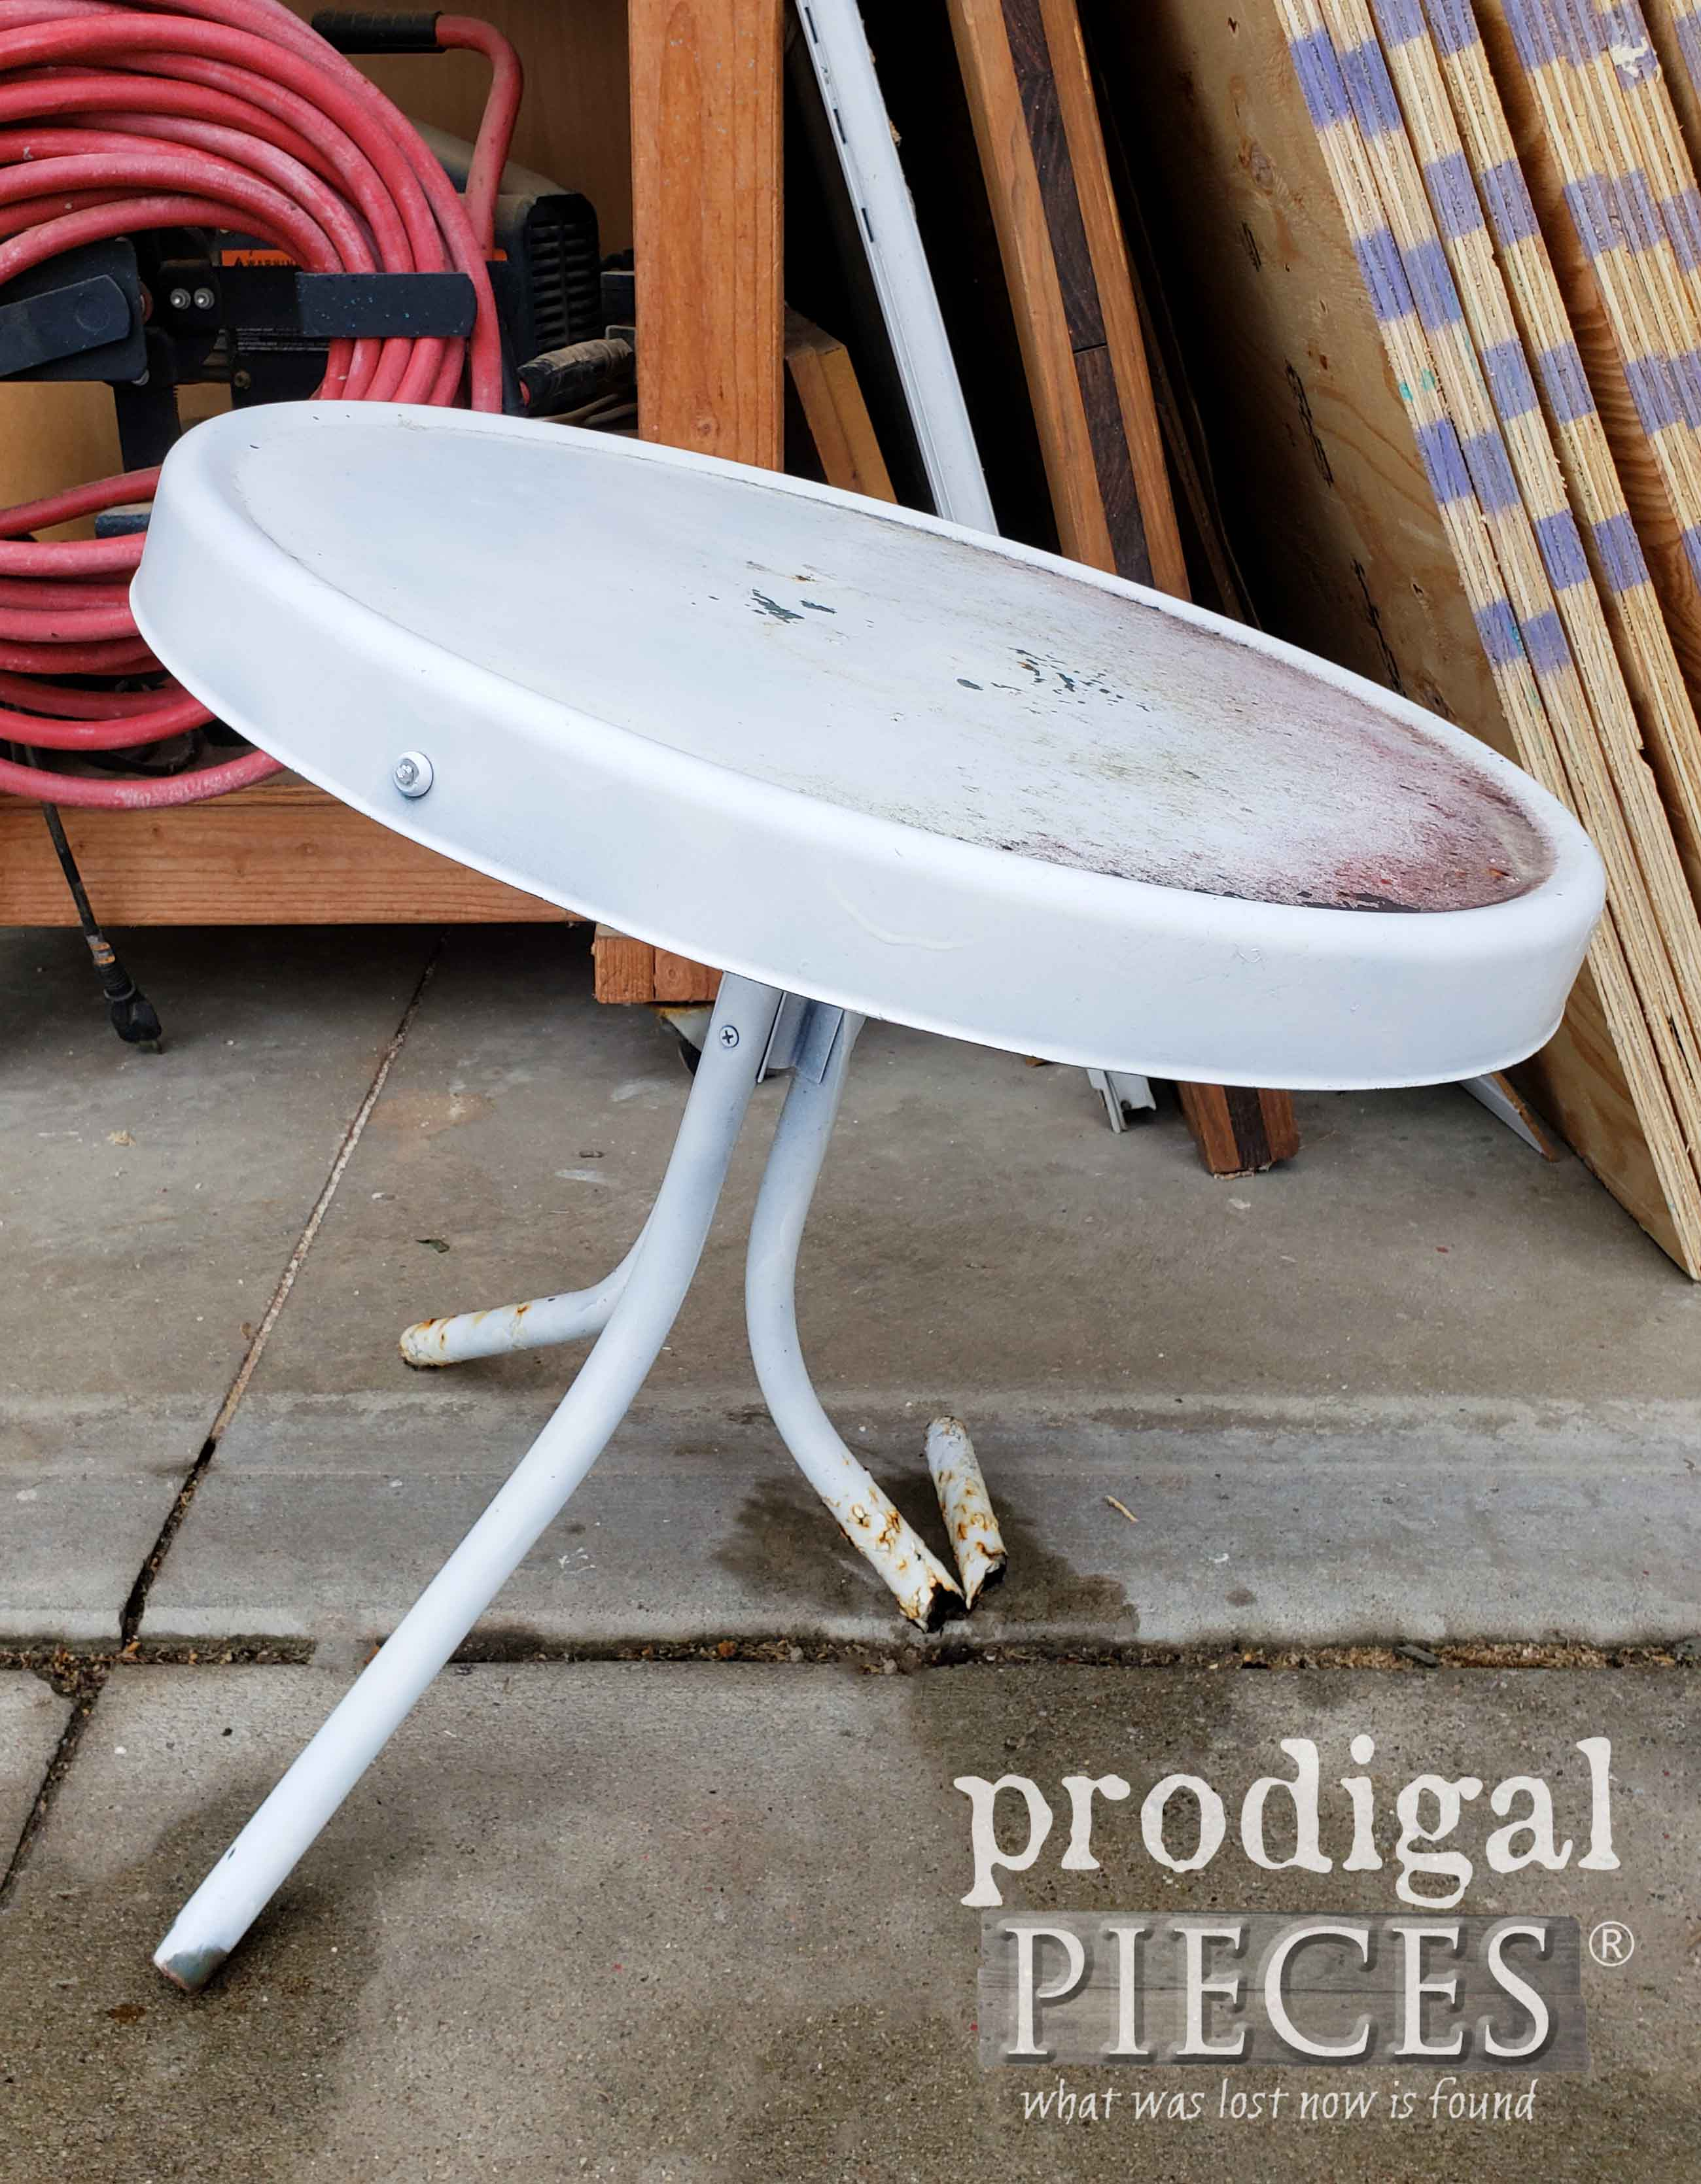 Metal Table Found in Trash | prodigalpieces.com